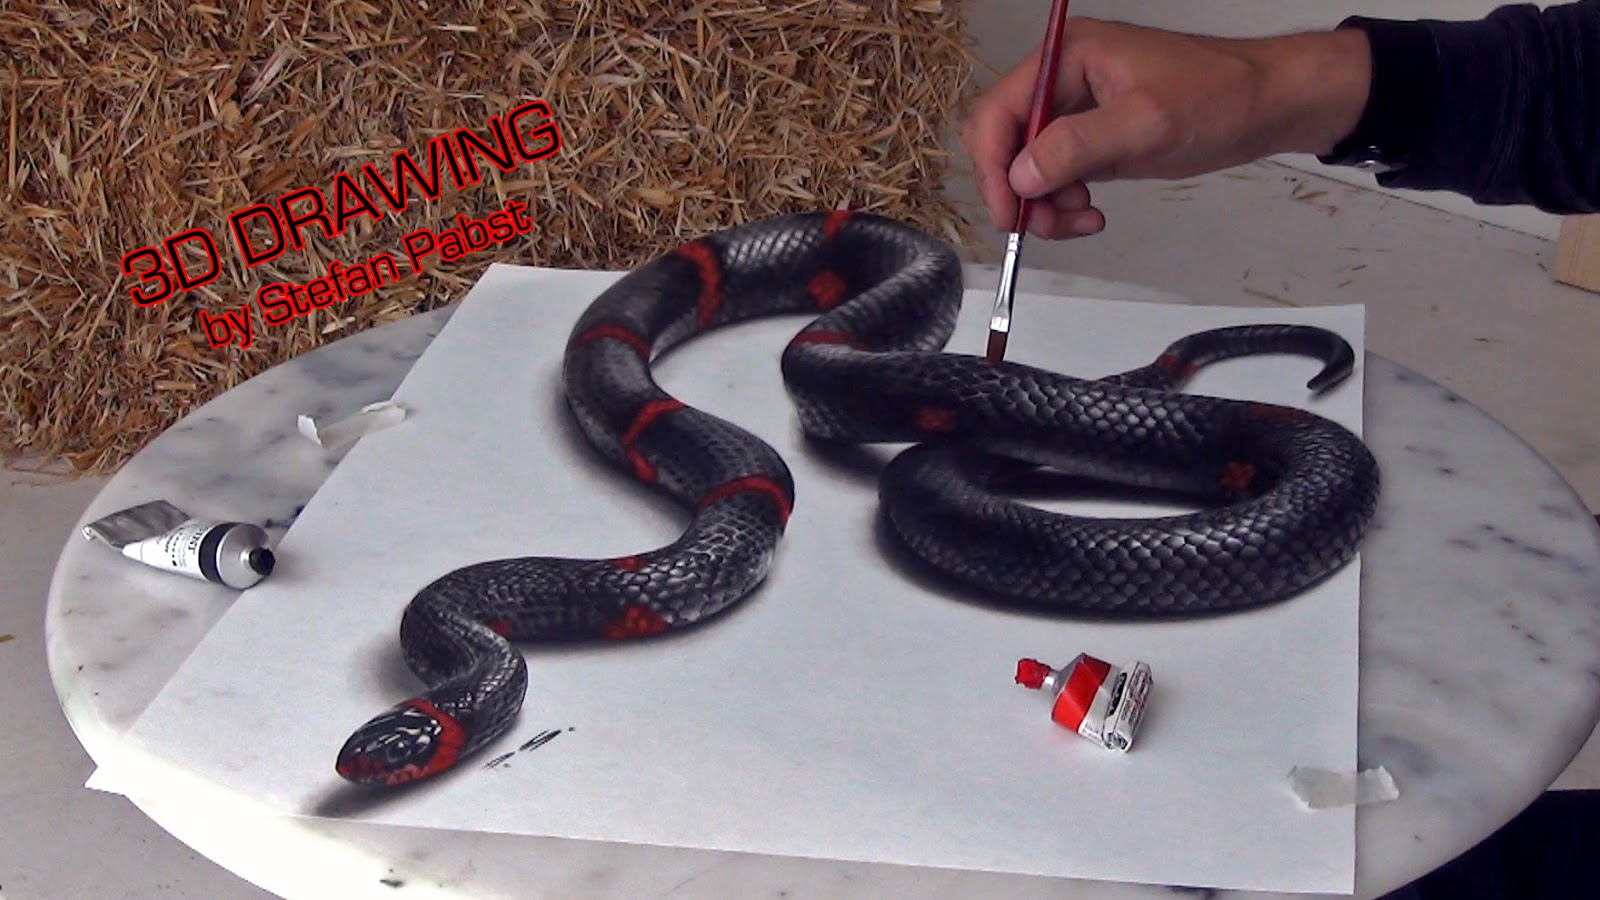 09-Snake-Stefan-Pabst-3D-Optical-Illusions-Drawings-and-Paintings-www-designstack-co